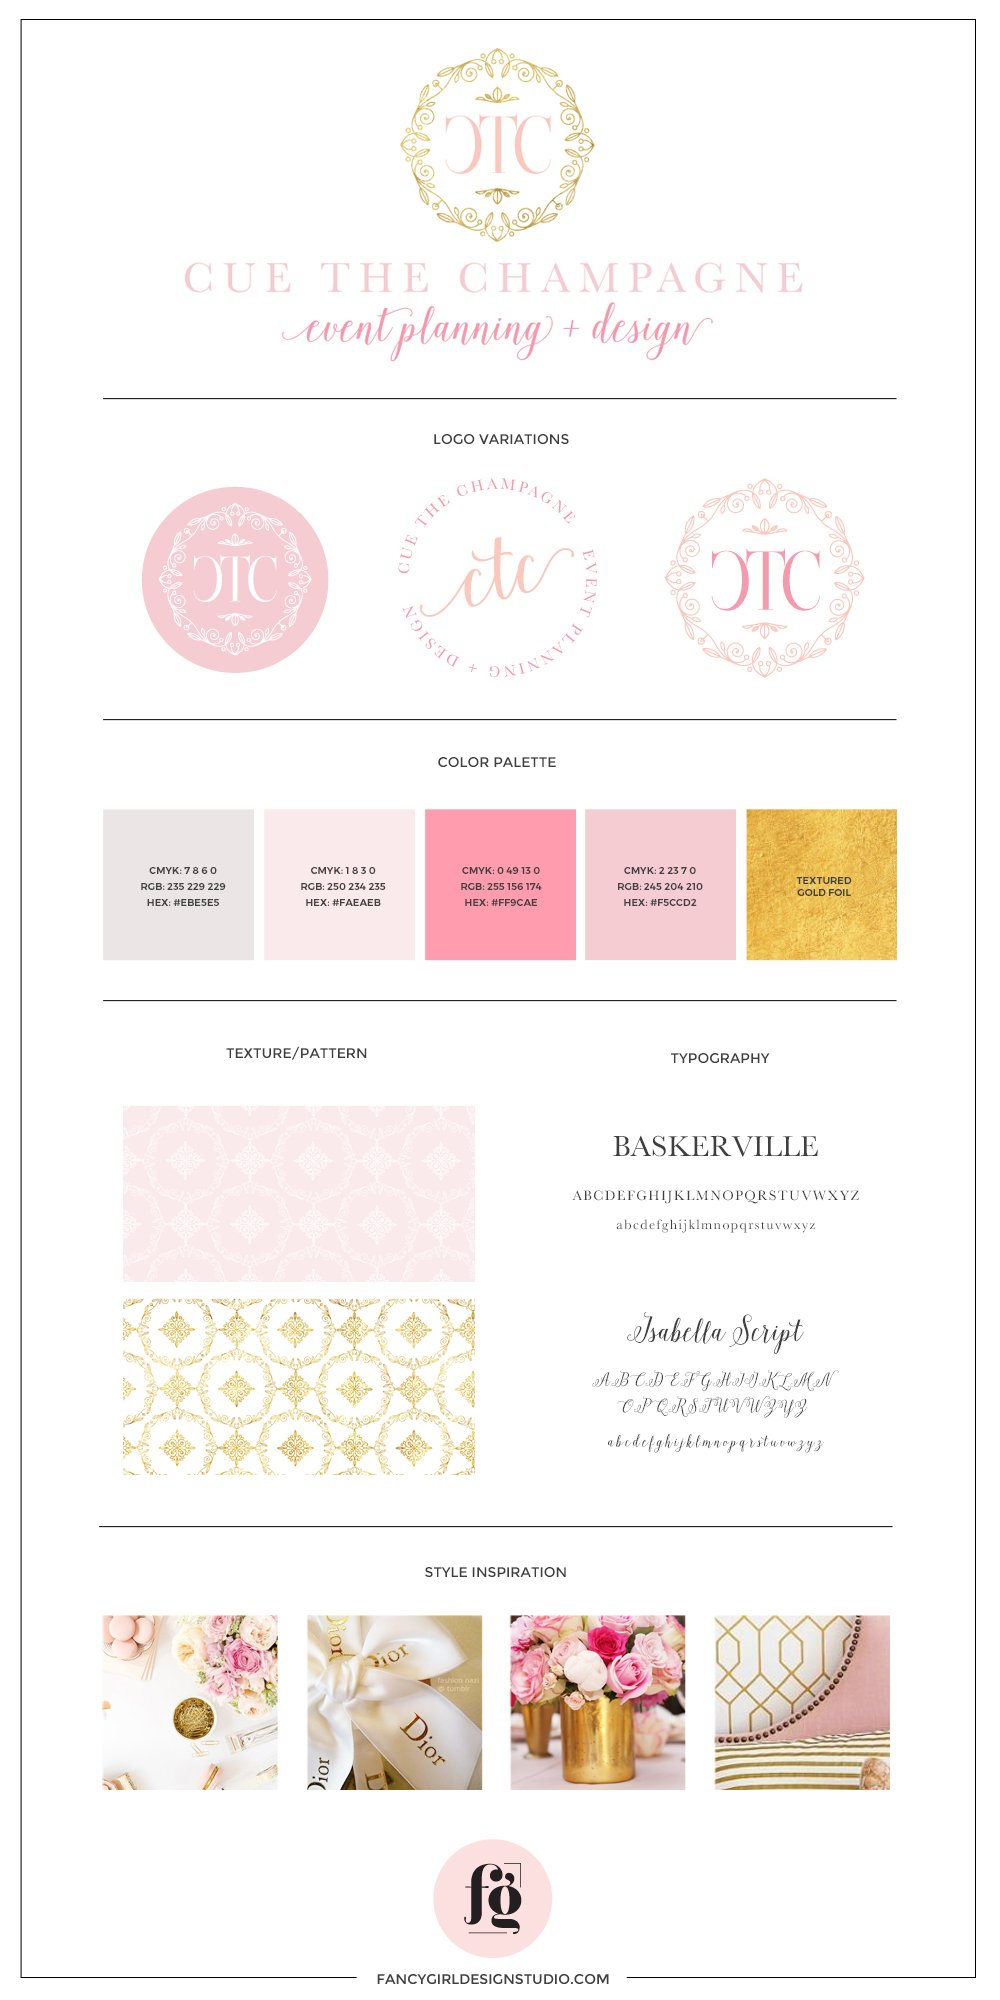 Brand guide for Cue the Champagne, by Fancy Girl Design Studio